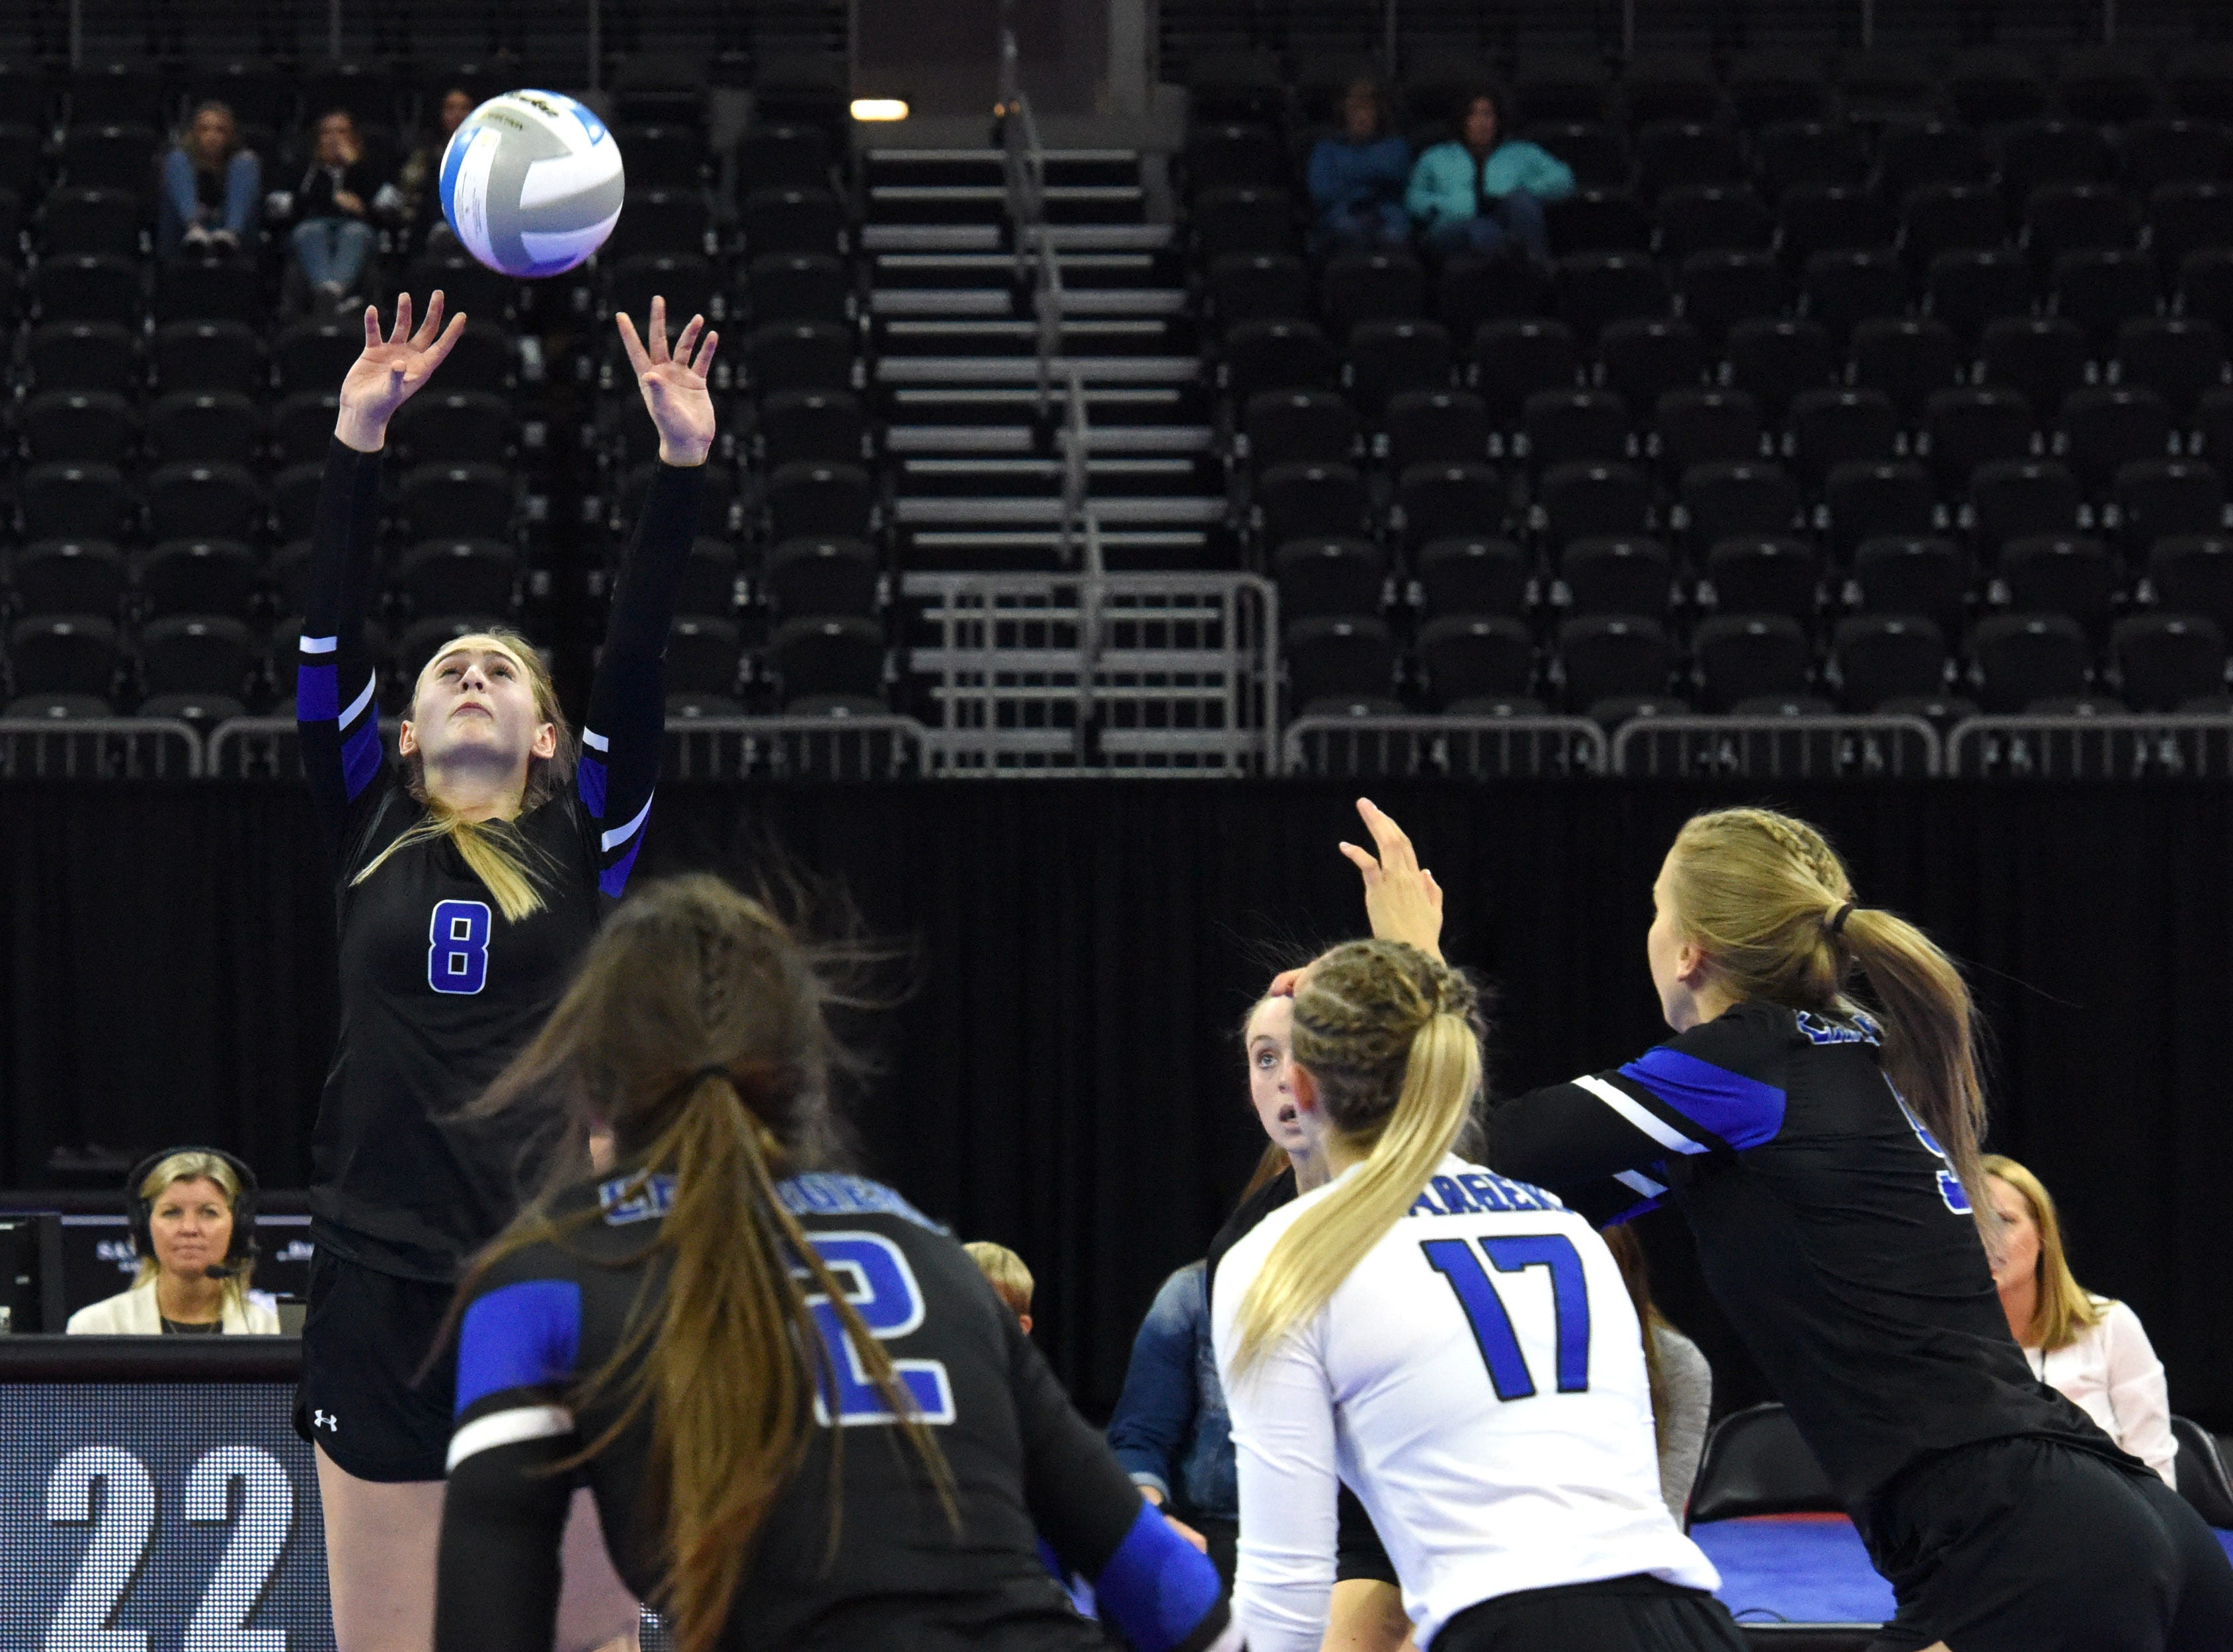 Sioux Falls Christian's Samantha Fykstra (8) sets the ball during a match against Miller, Saturday, Nov. 17, 2018, at the Denny Sanford Premier Center in Sioux Falls, S.D.